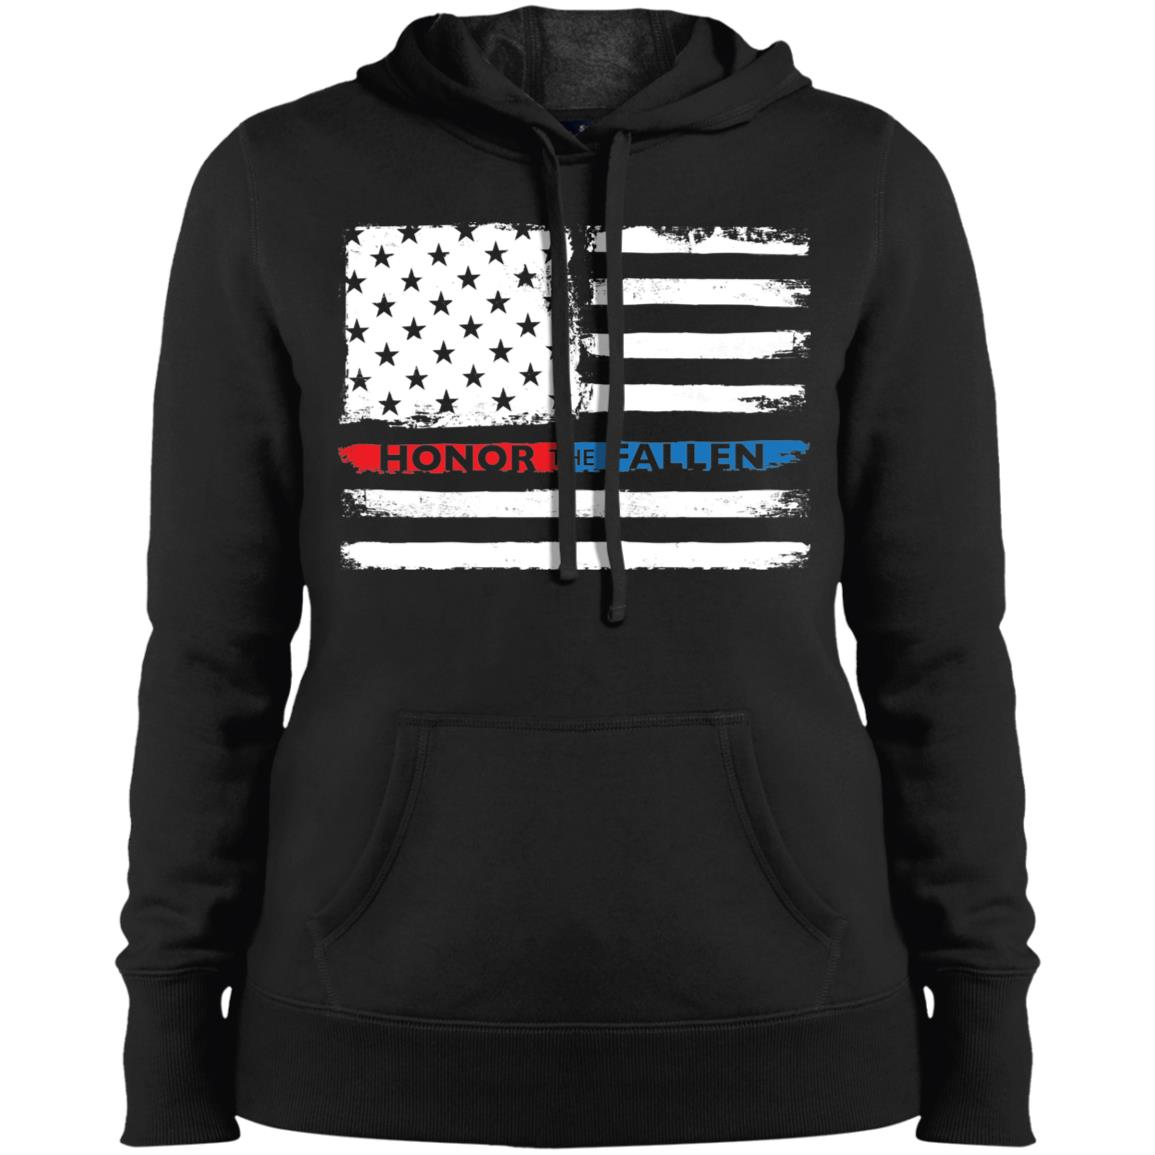 Honor the Fallen - Ladies Sport-Tek Ladies' Pullover Hooded Sweatshirt